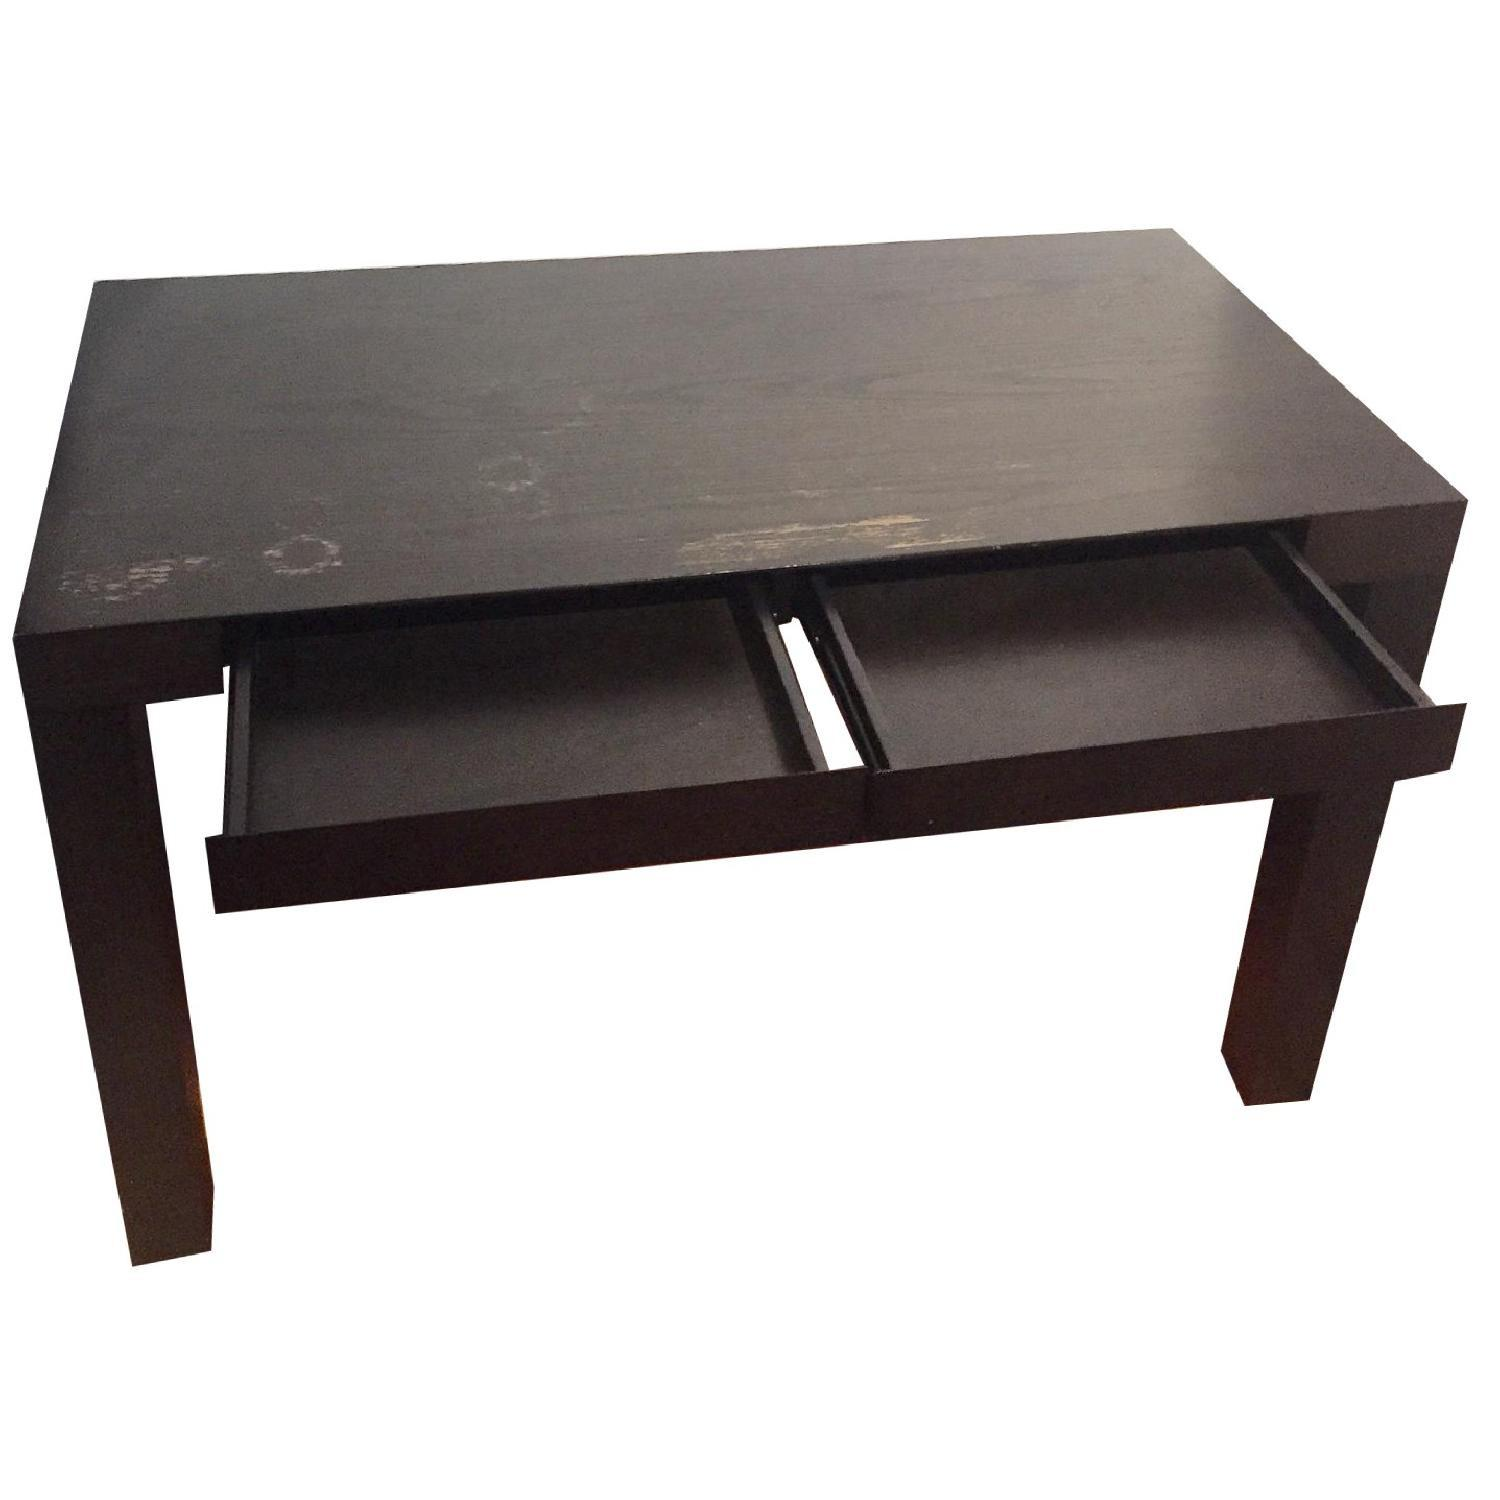 West Elm Parsons Desk in Chocolate - image-1